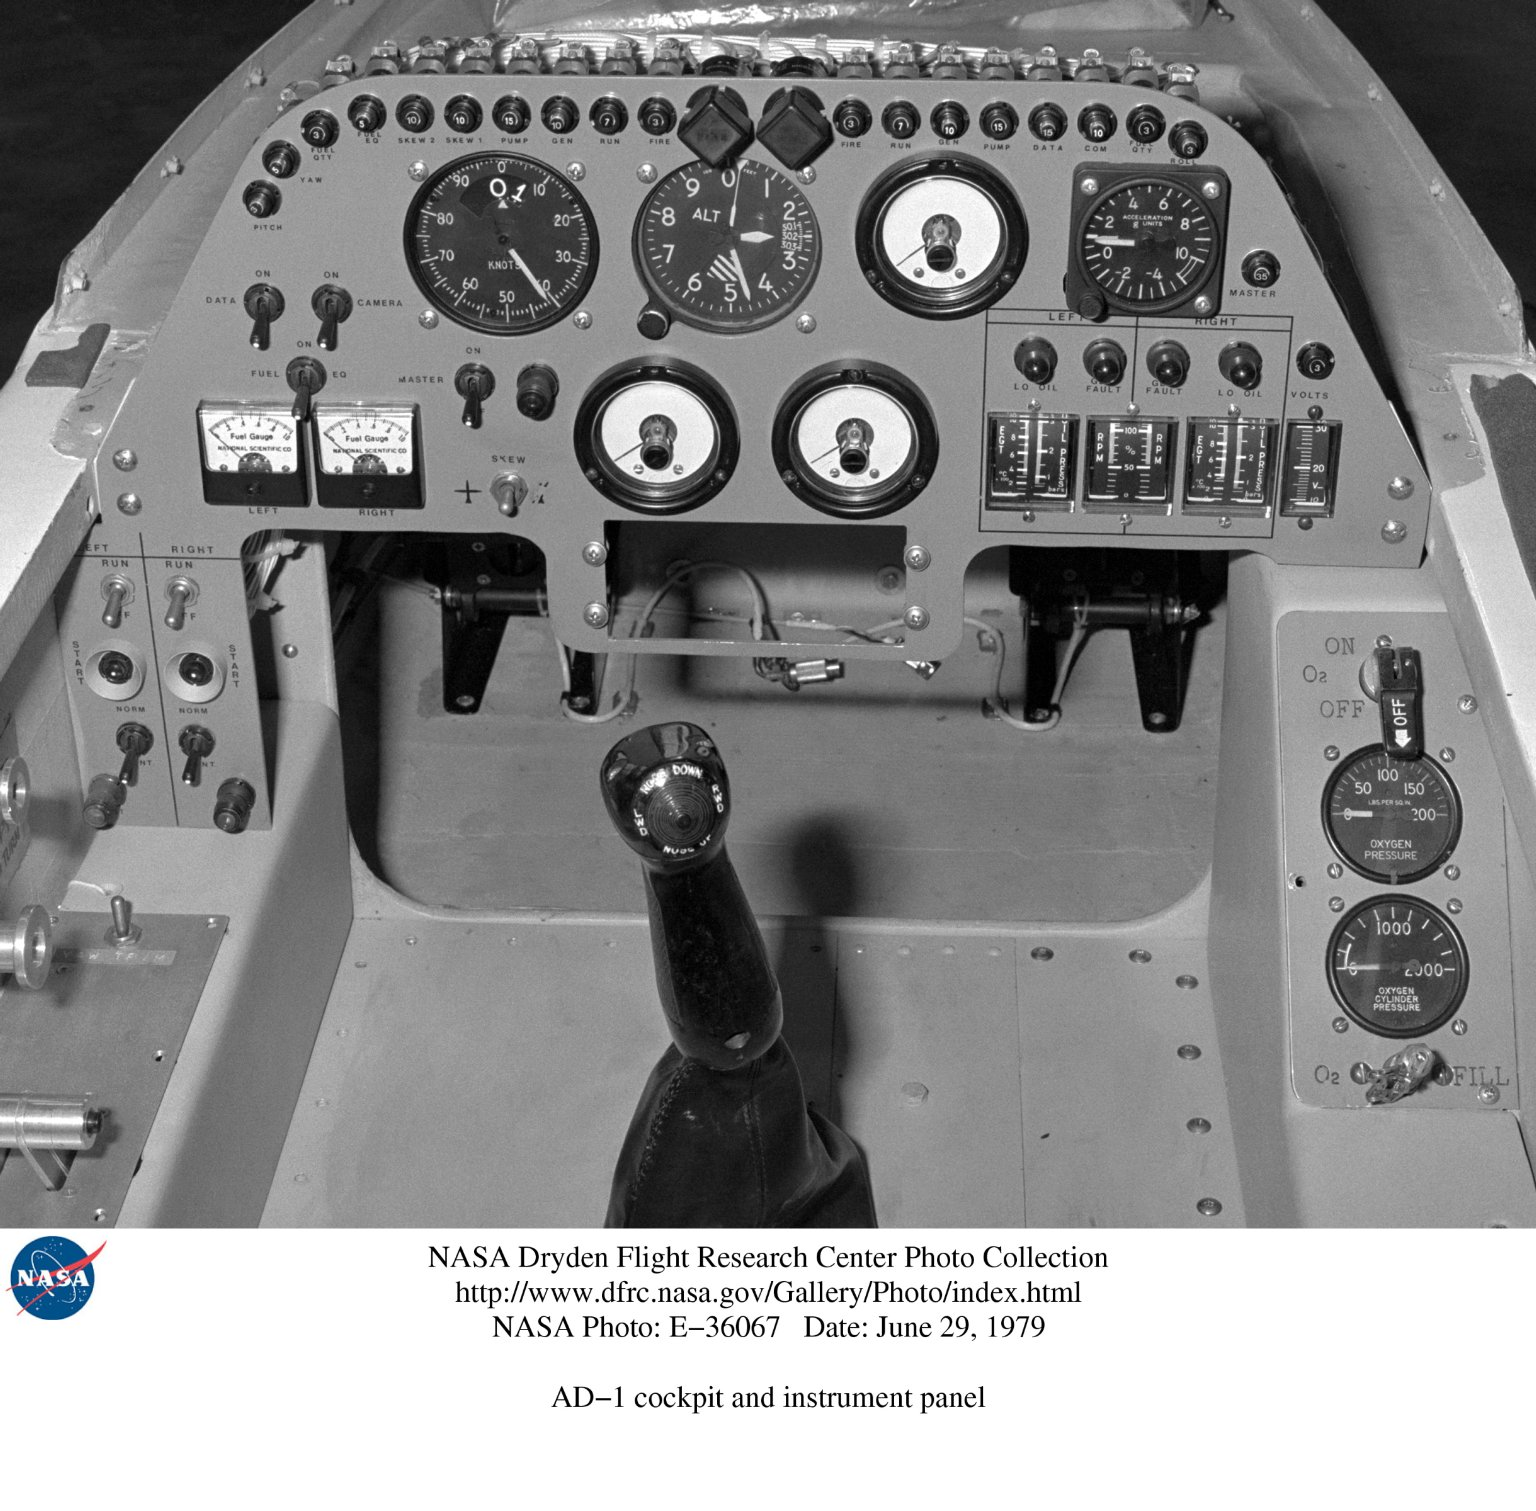 AD-1 cockpit and instrument panel